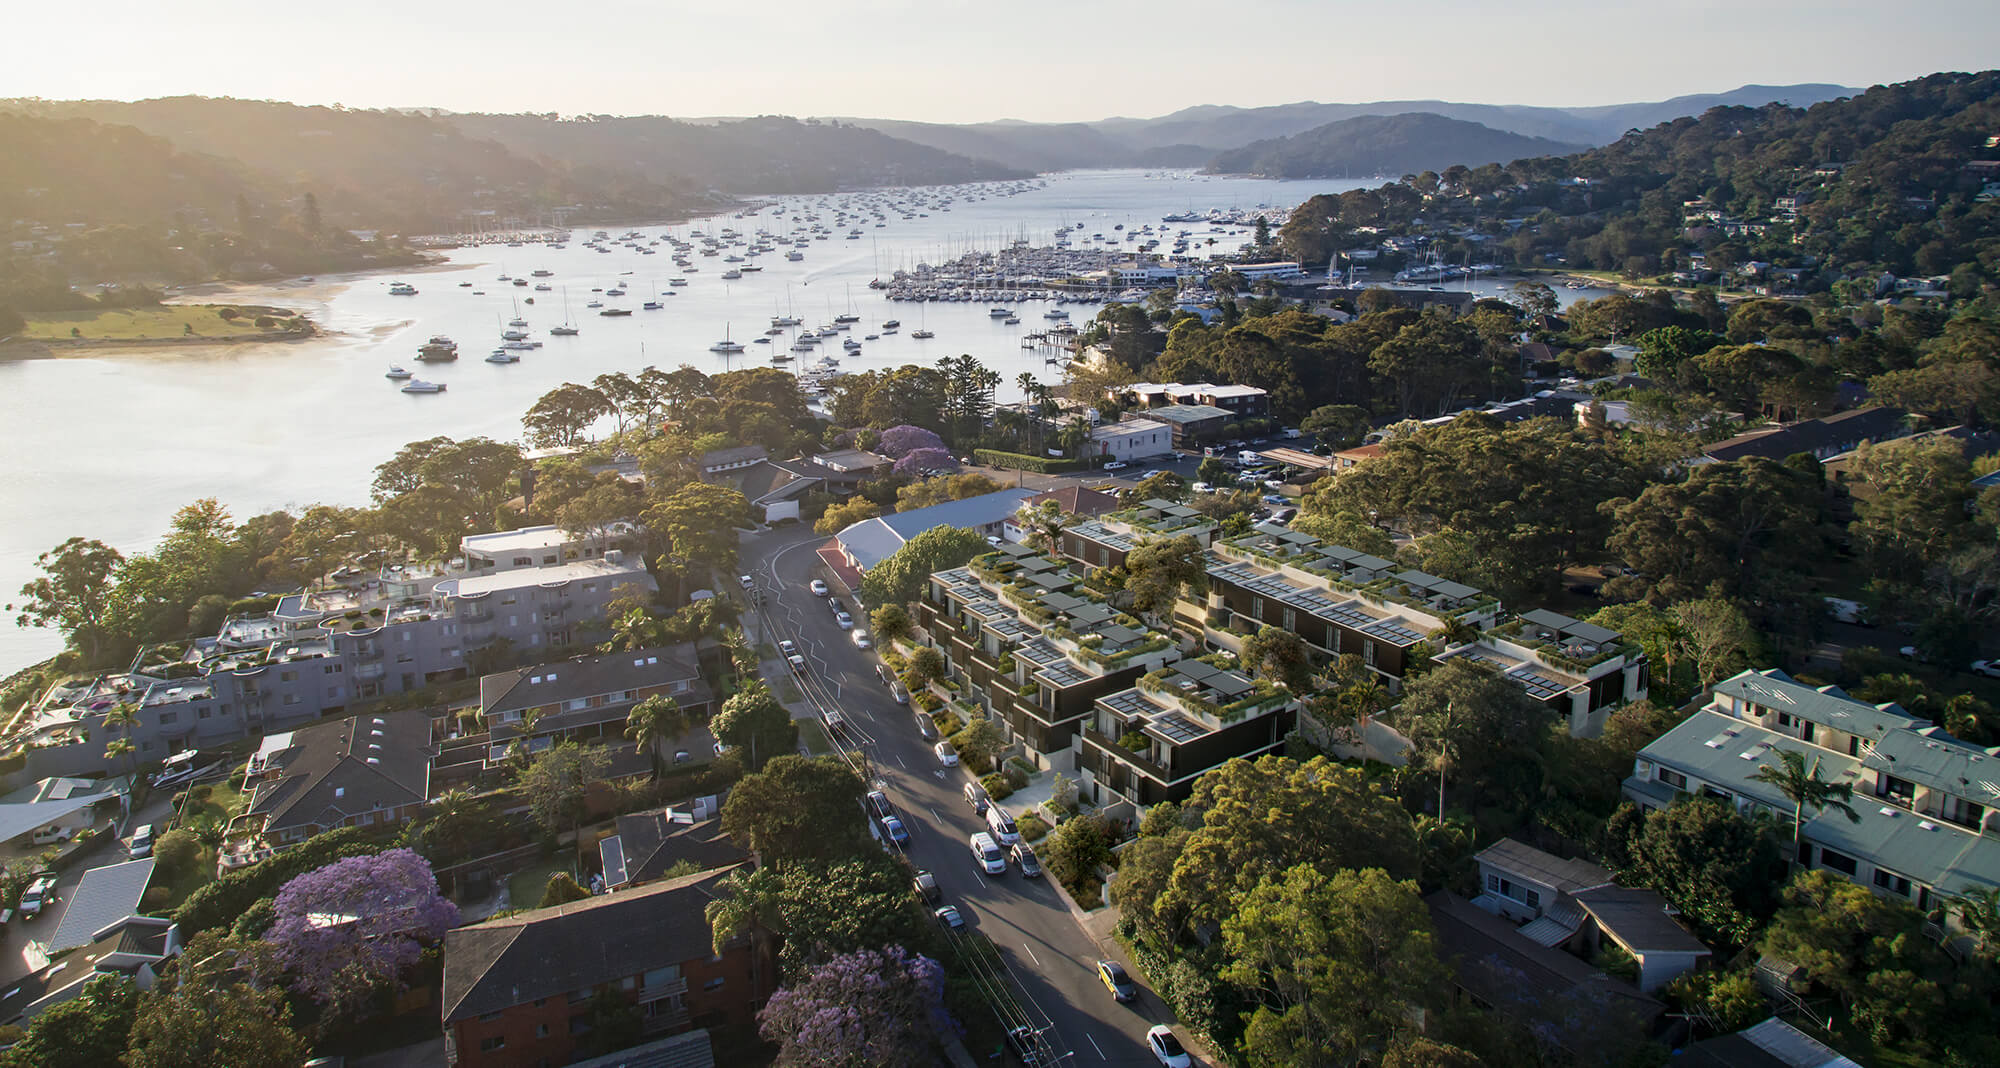 Luxury Newport townhouses that generate own power and food